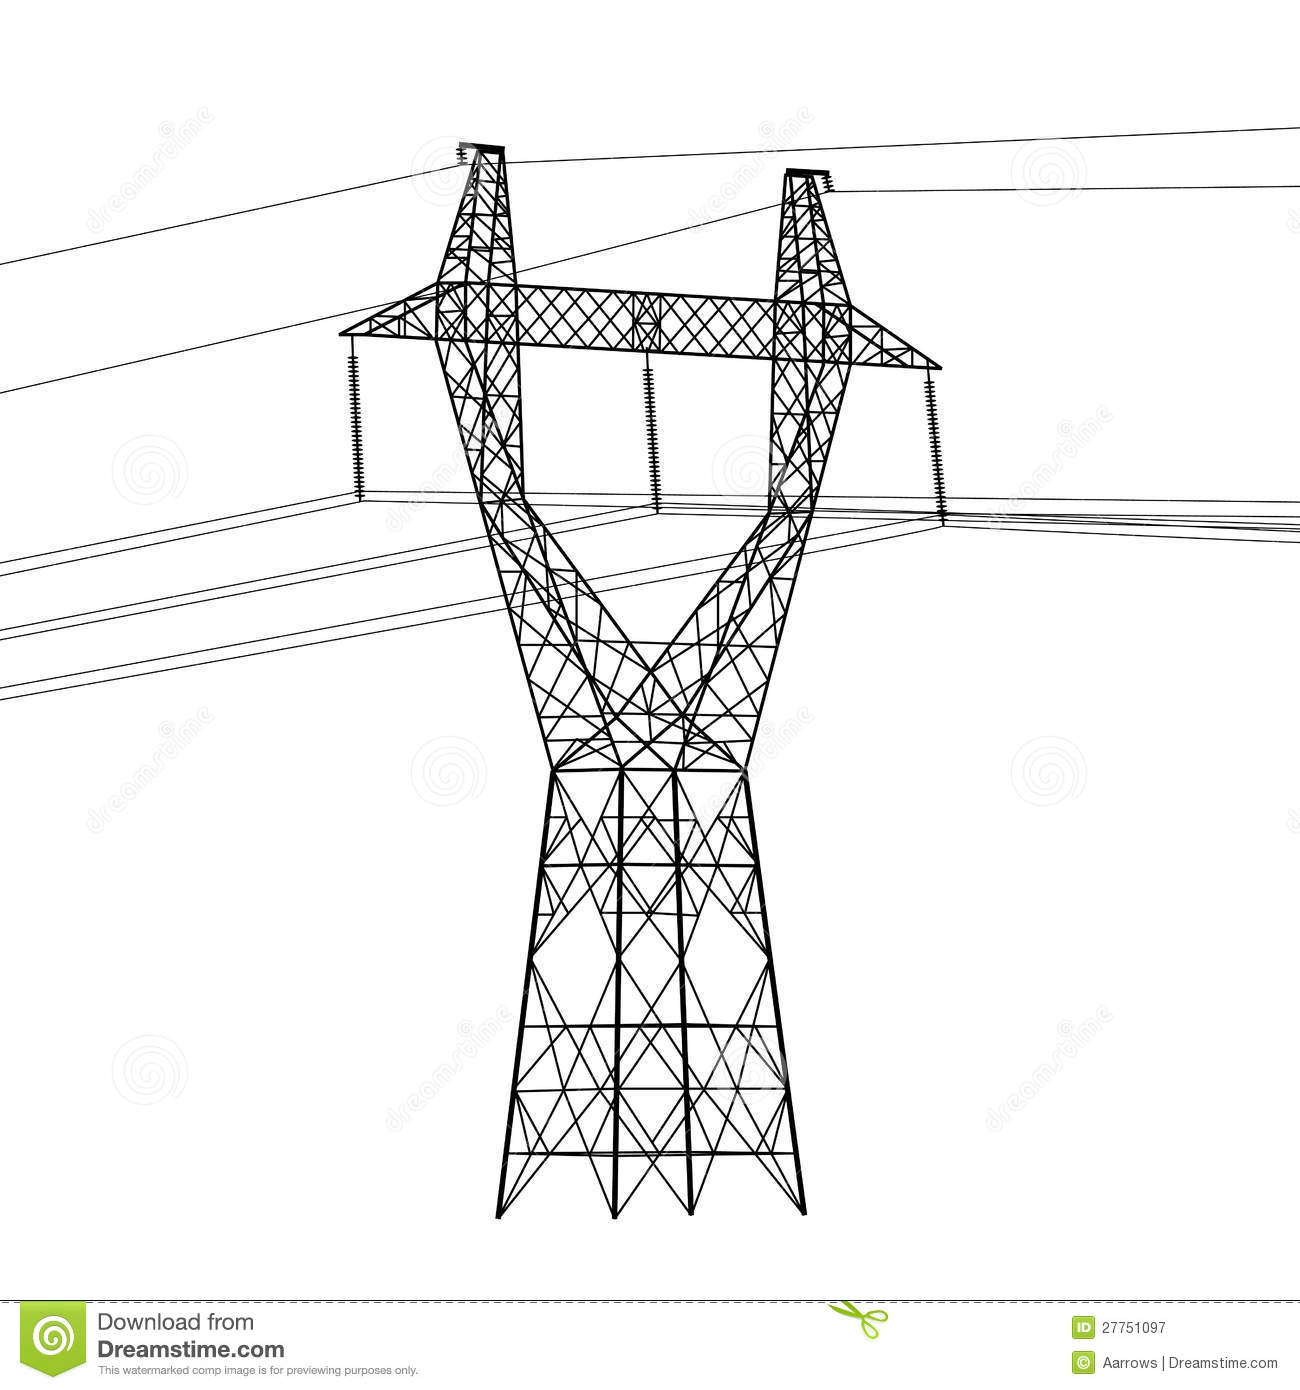 Silhouette Of High Voltage Power Lines Royalty Free Stock